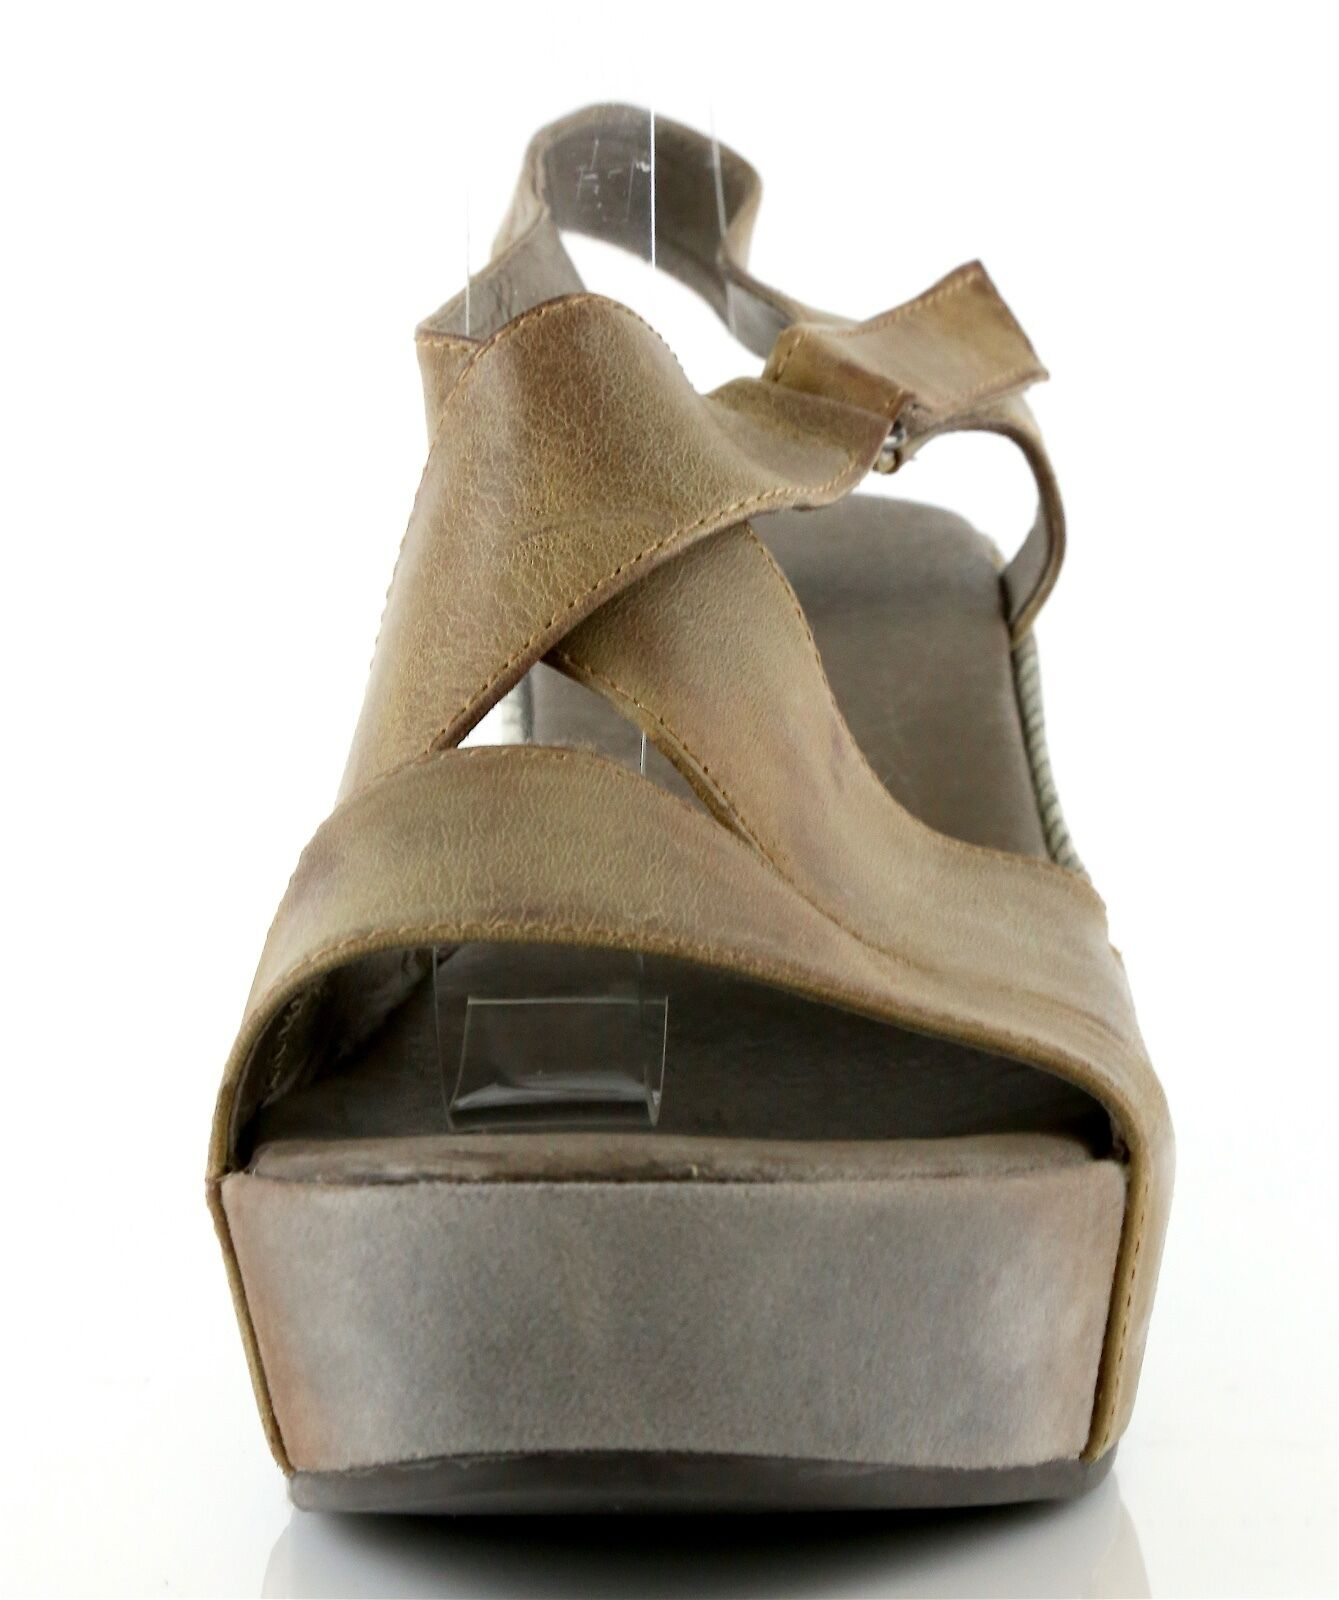 Antelope 7429 Woman's Brown Pelle Strappy Wedge Sandals NEW!  Size 40 EU NEW! Sandals 2cd3c4